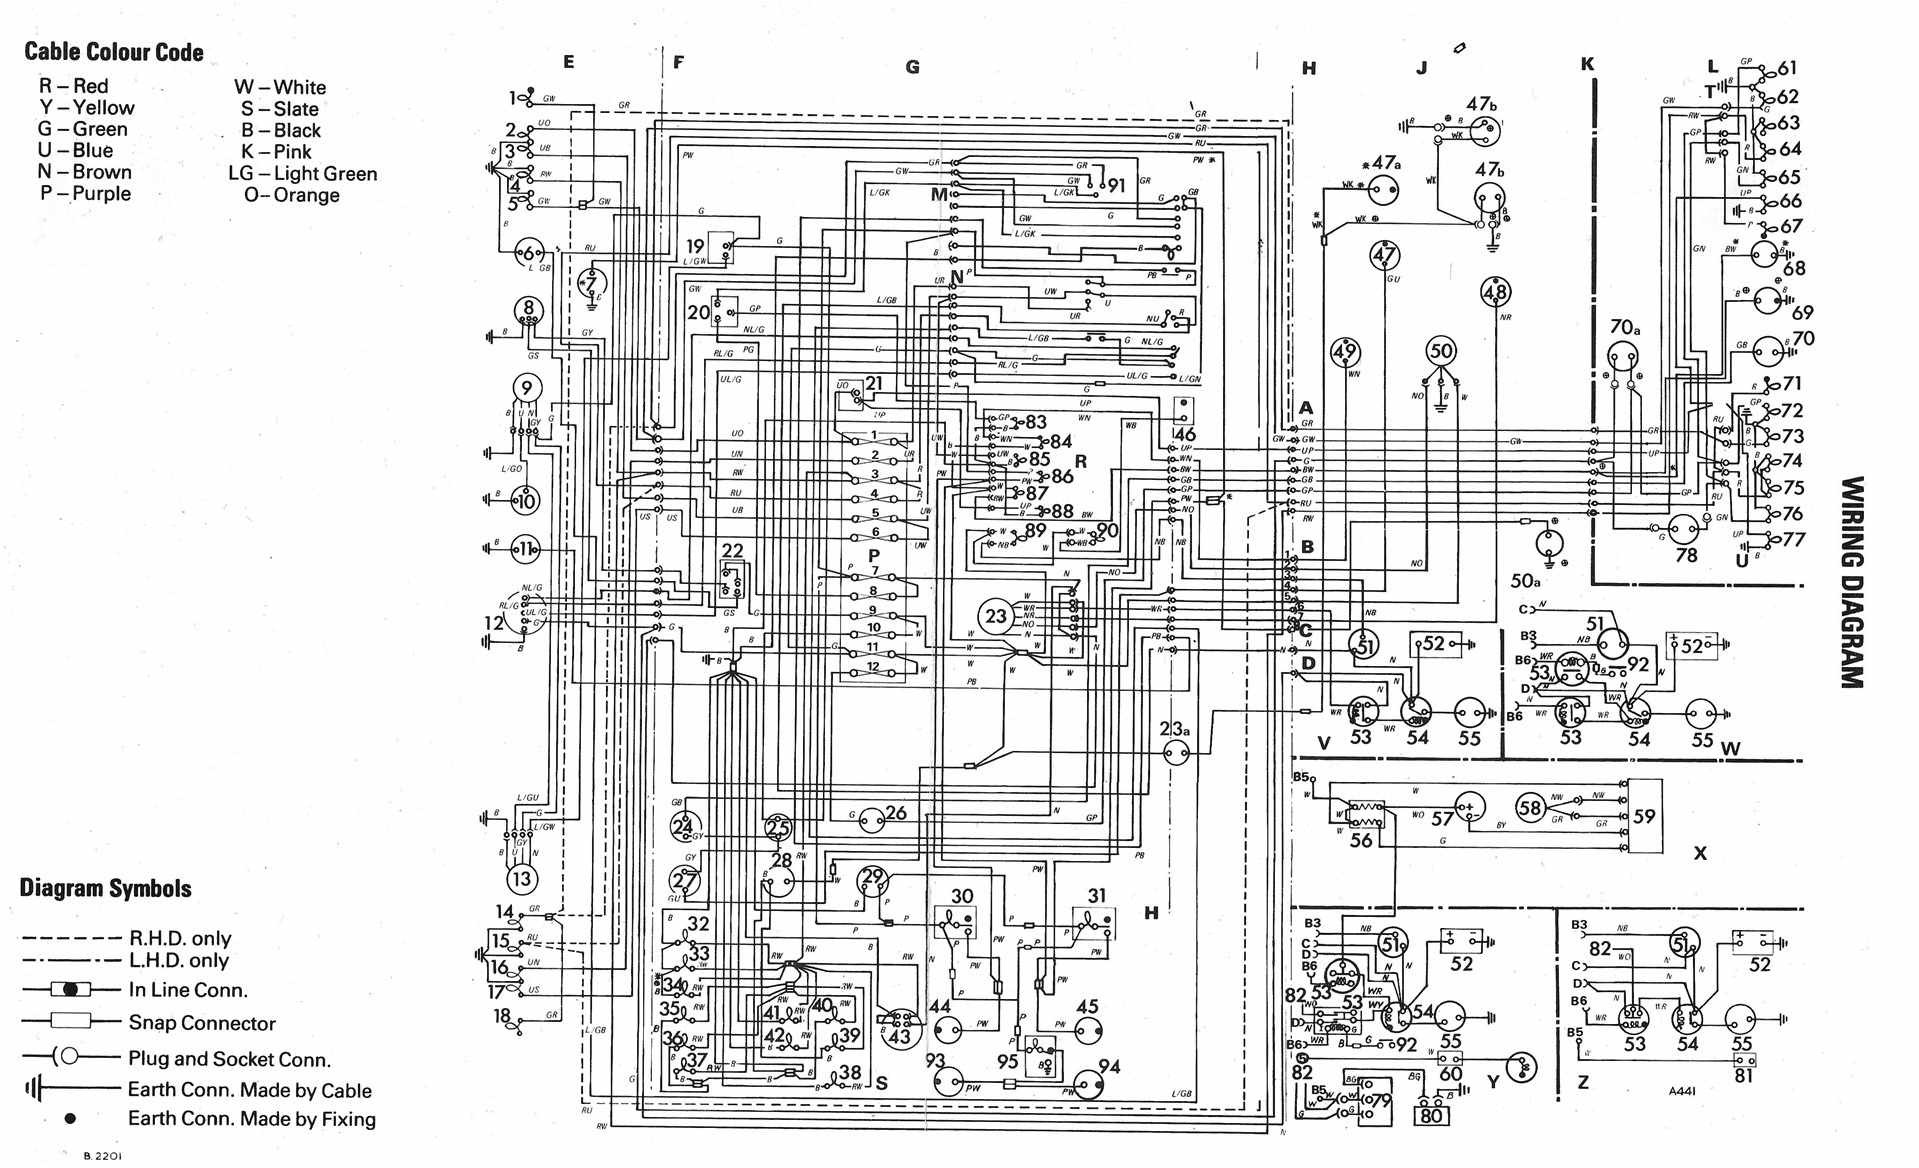 hight resolution of sel engine wiring diagram wiring diagram database sel engine wiring diagram basic electronics wiring diagram sel